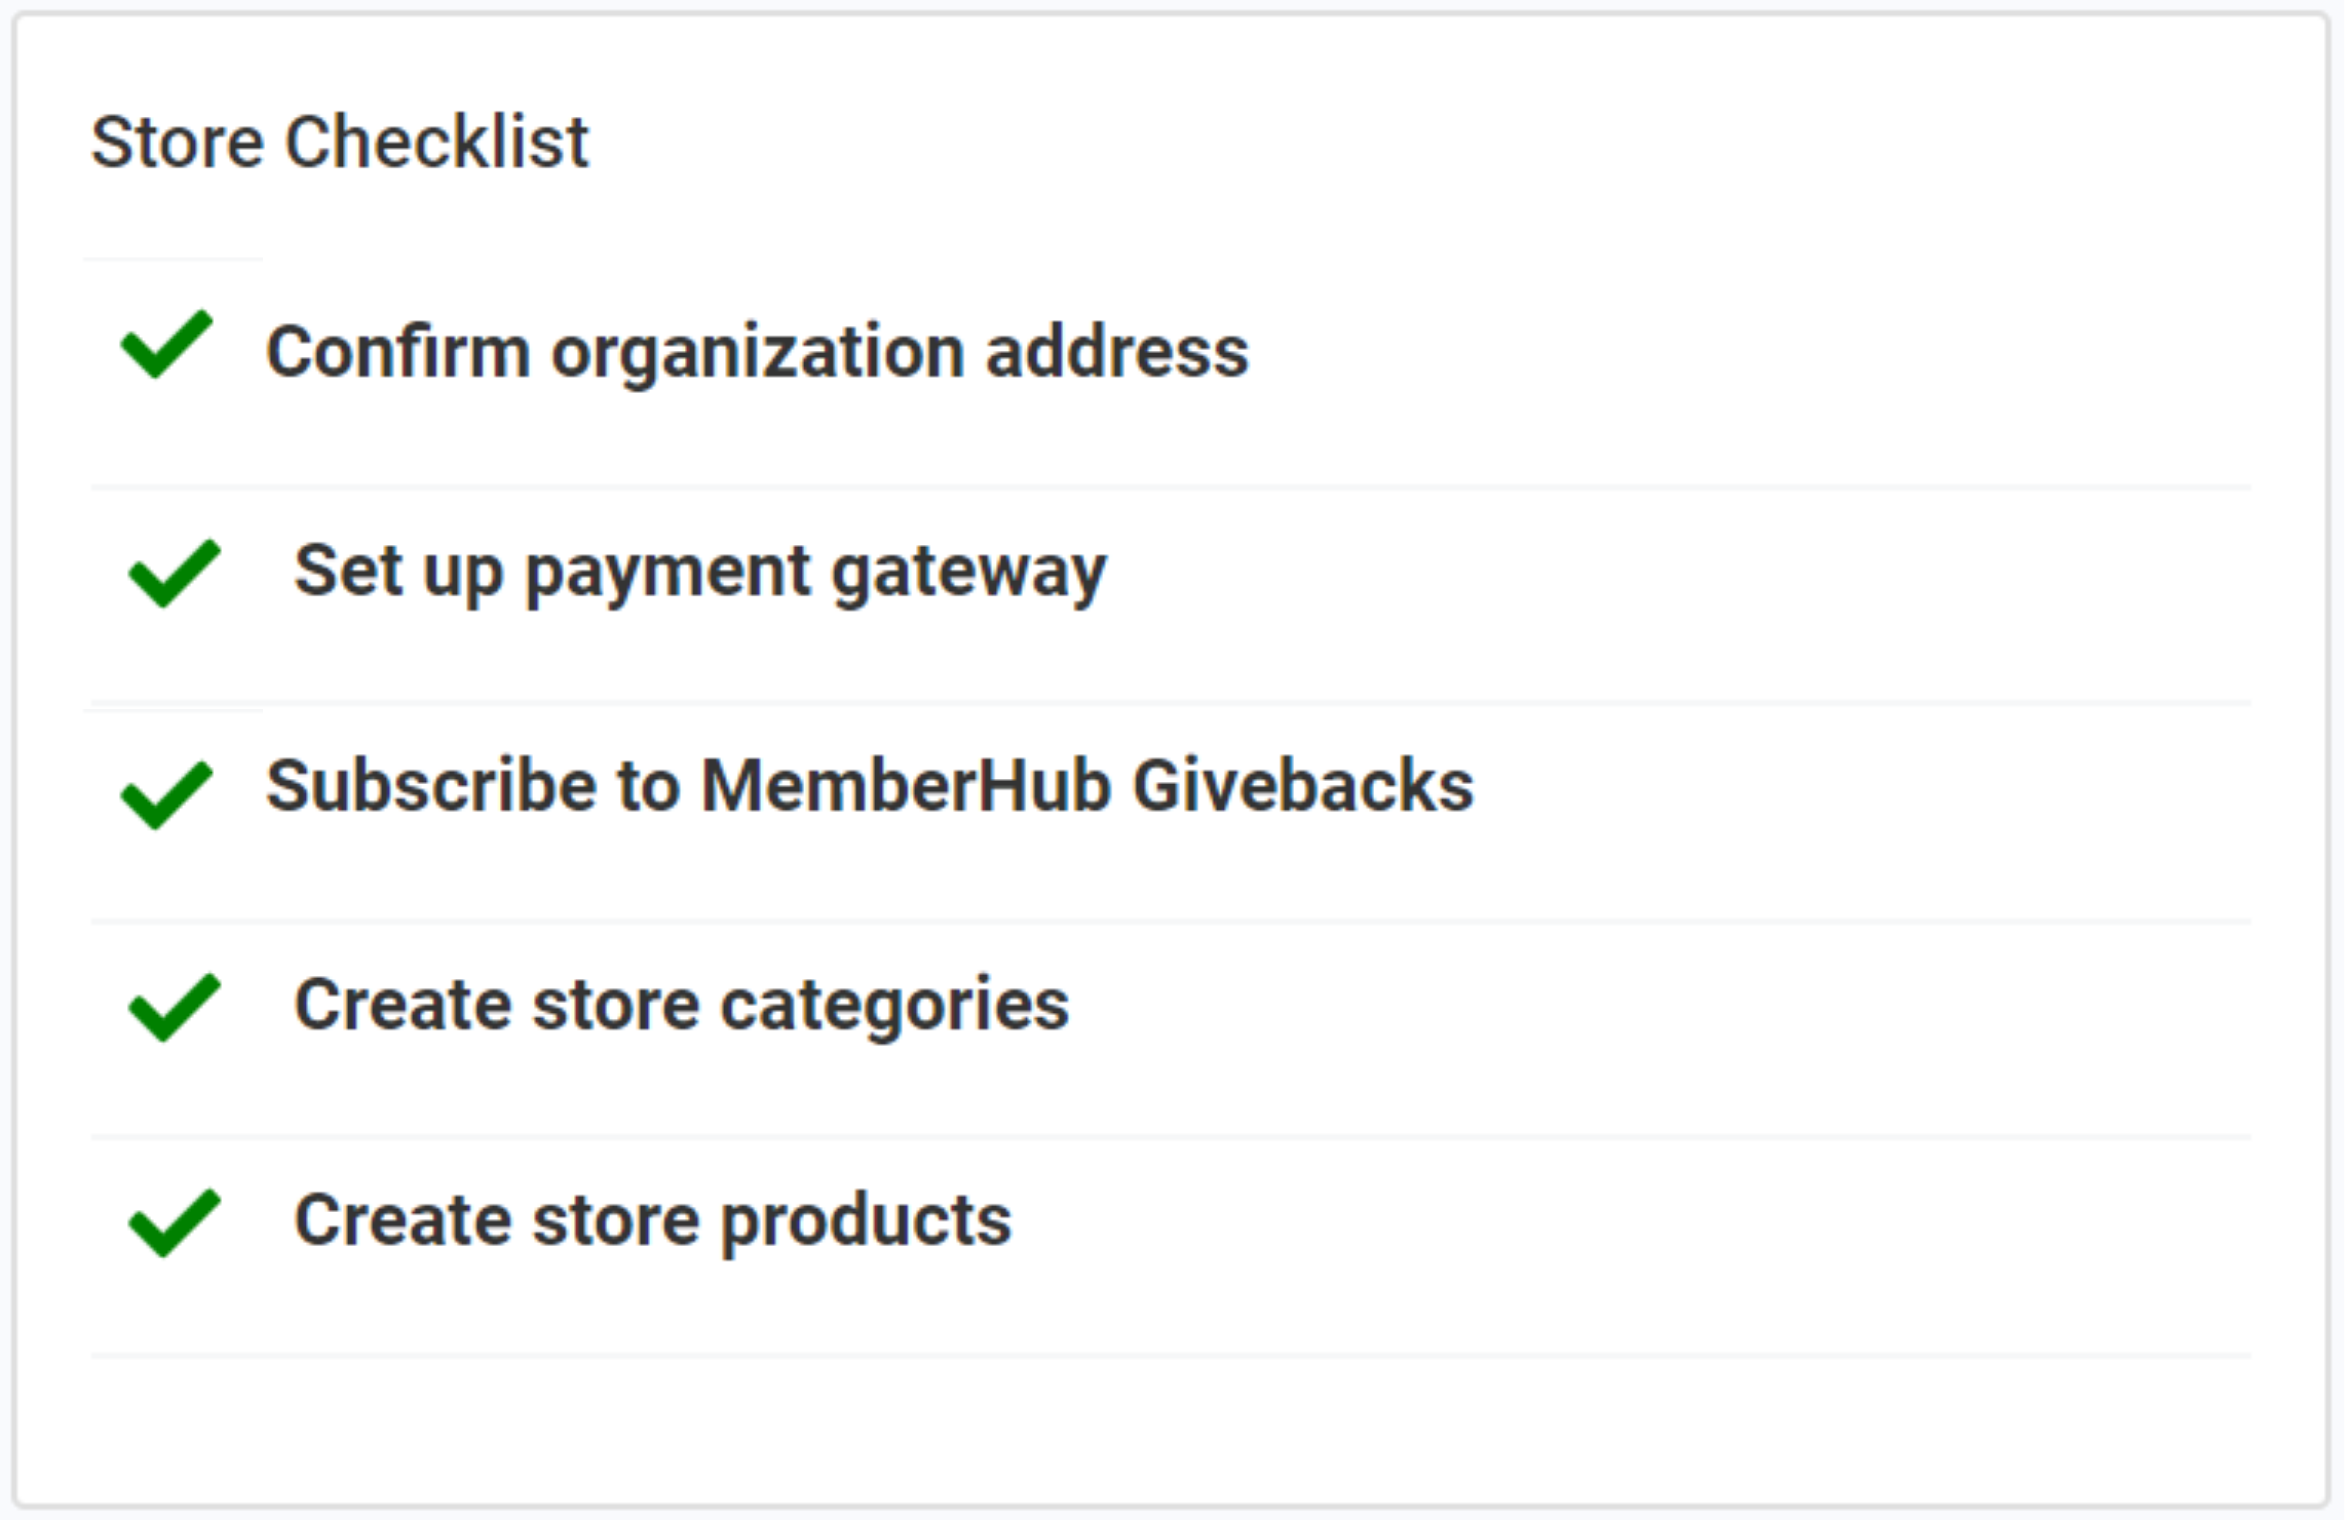 store_checklist.png